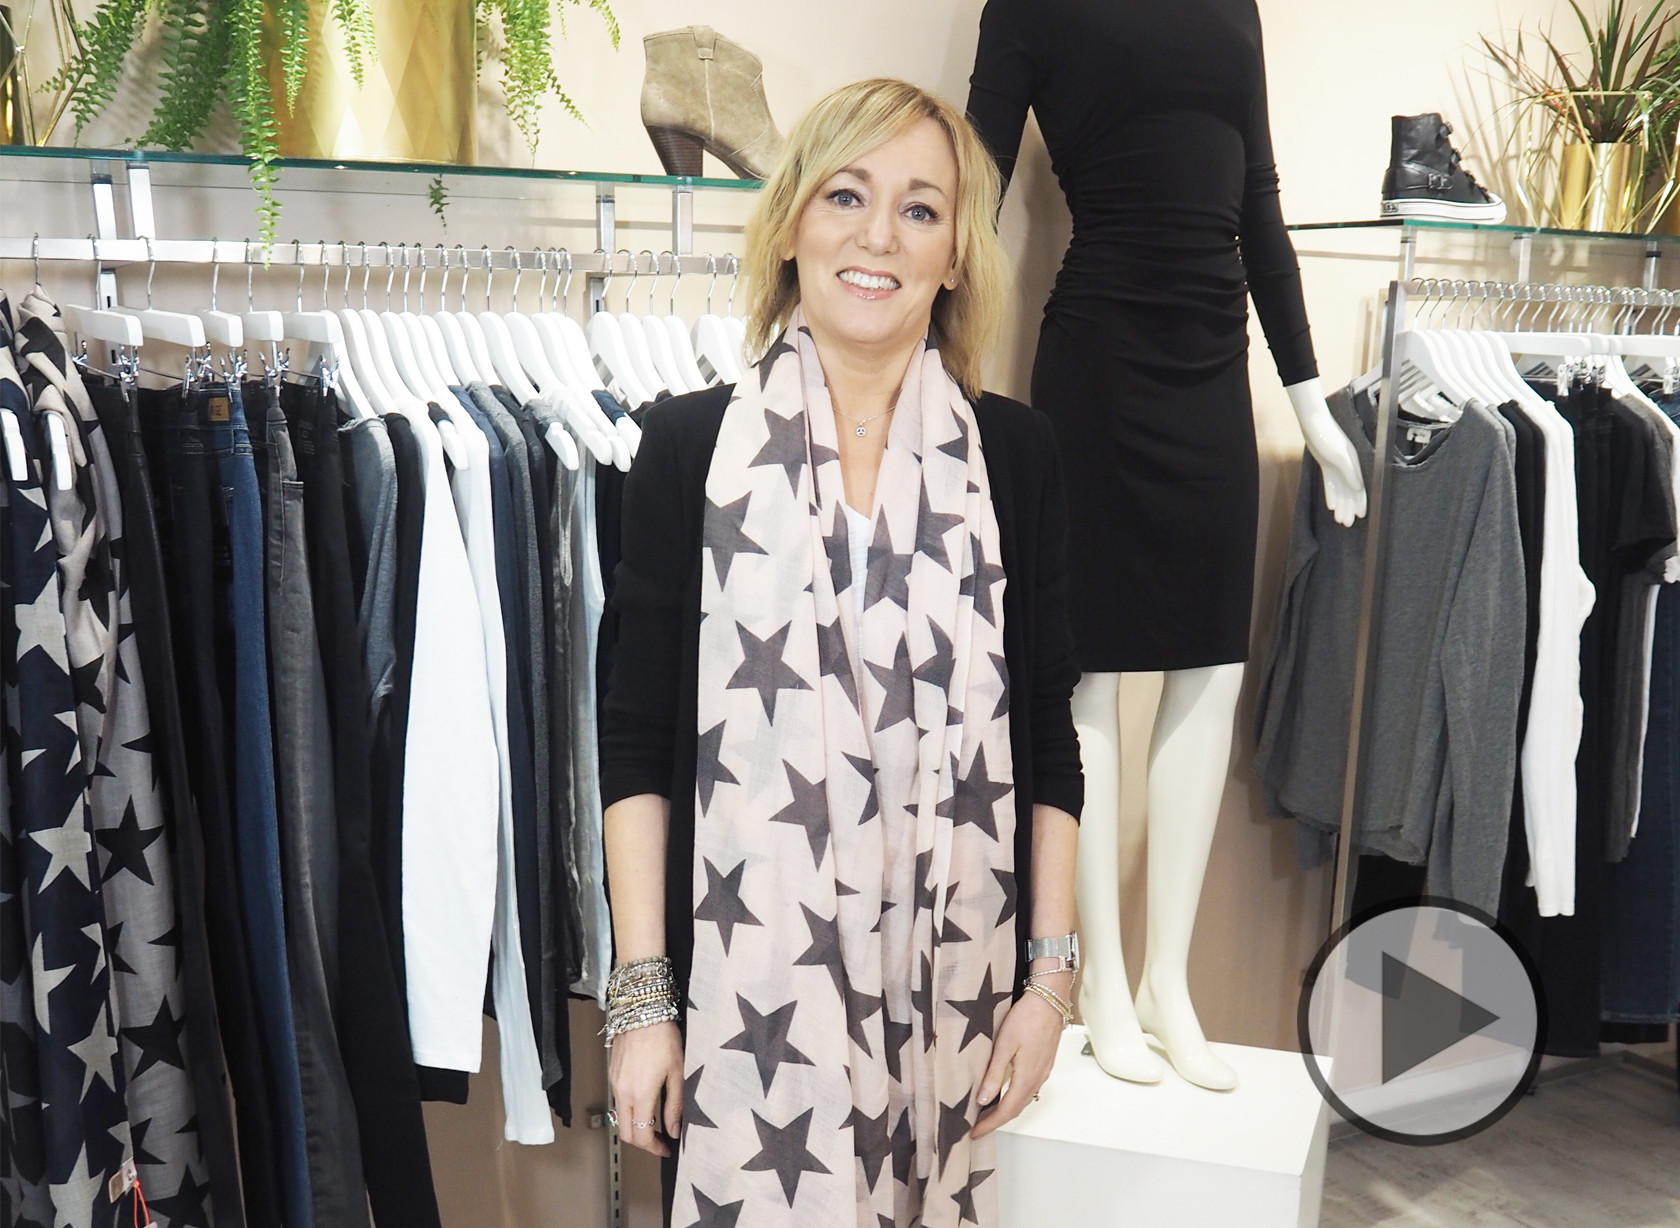 Deryane's Key Wardrobe Essential's Video